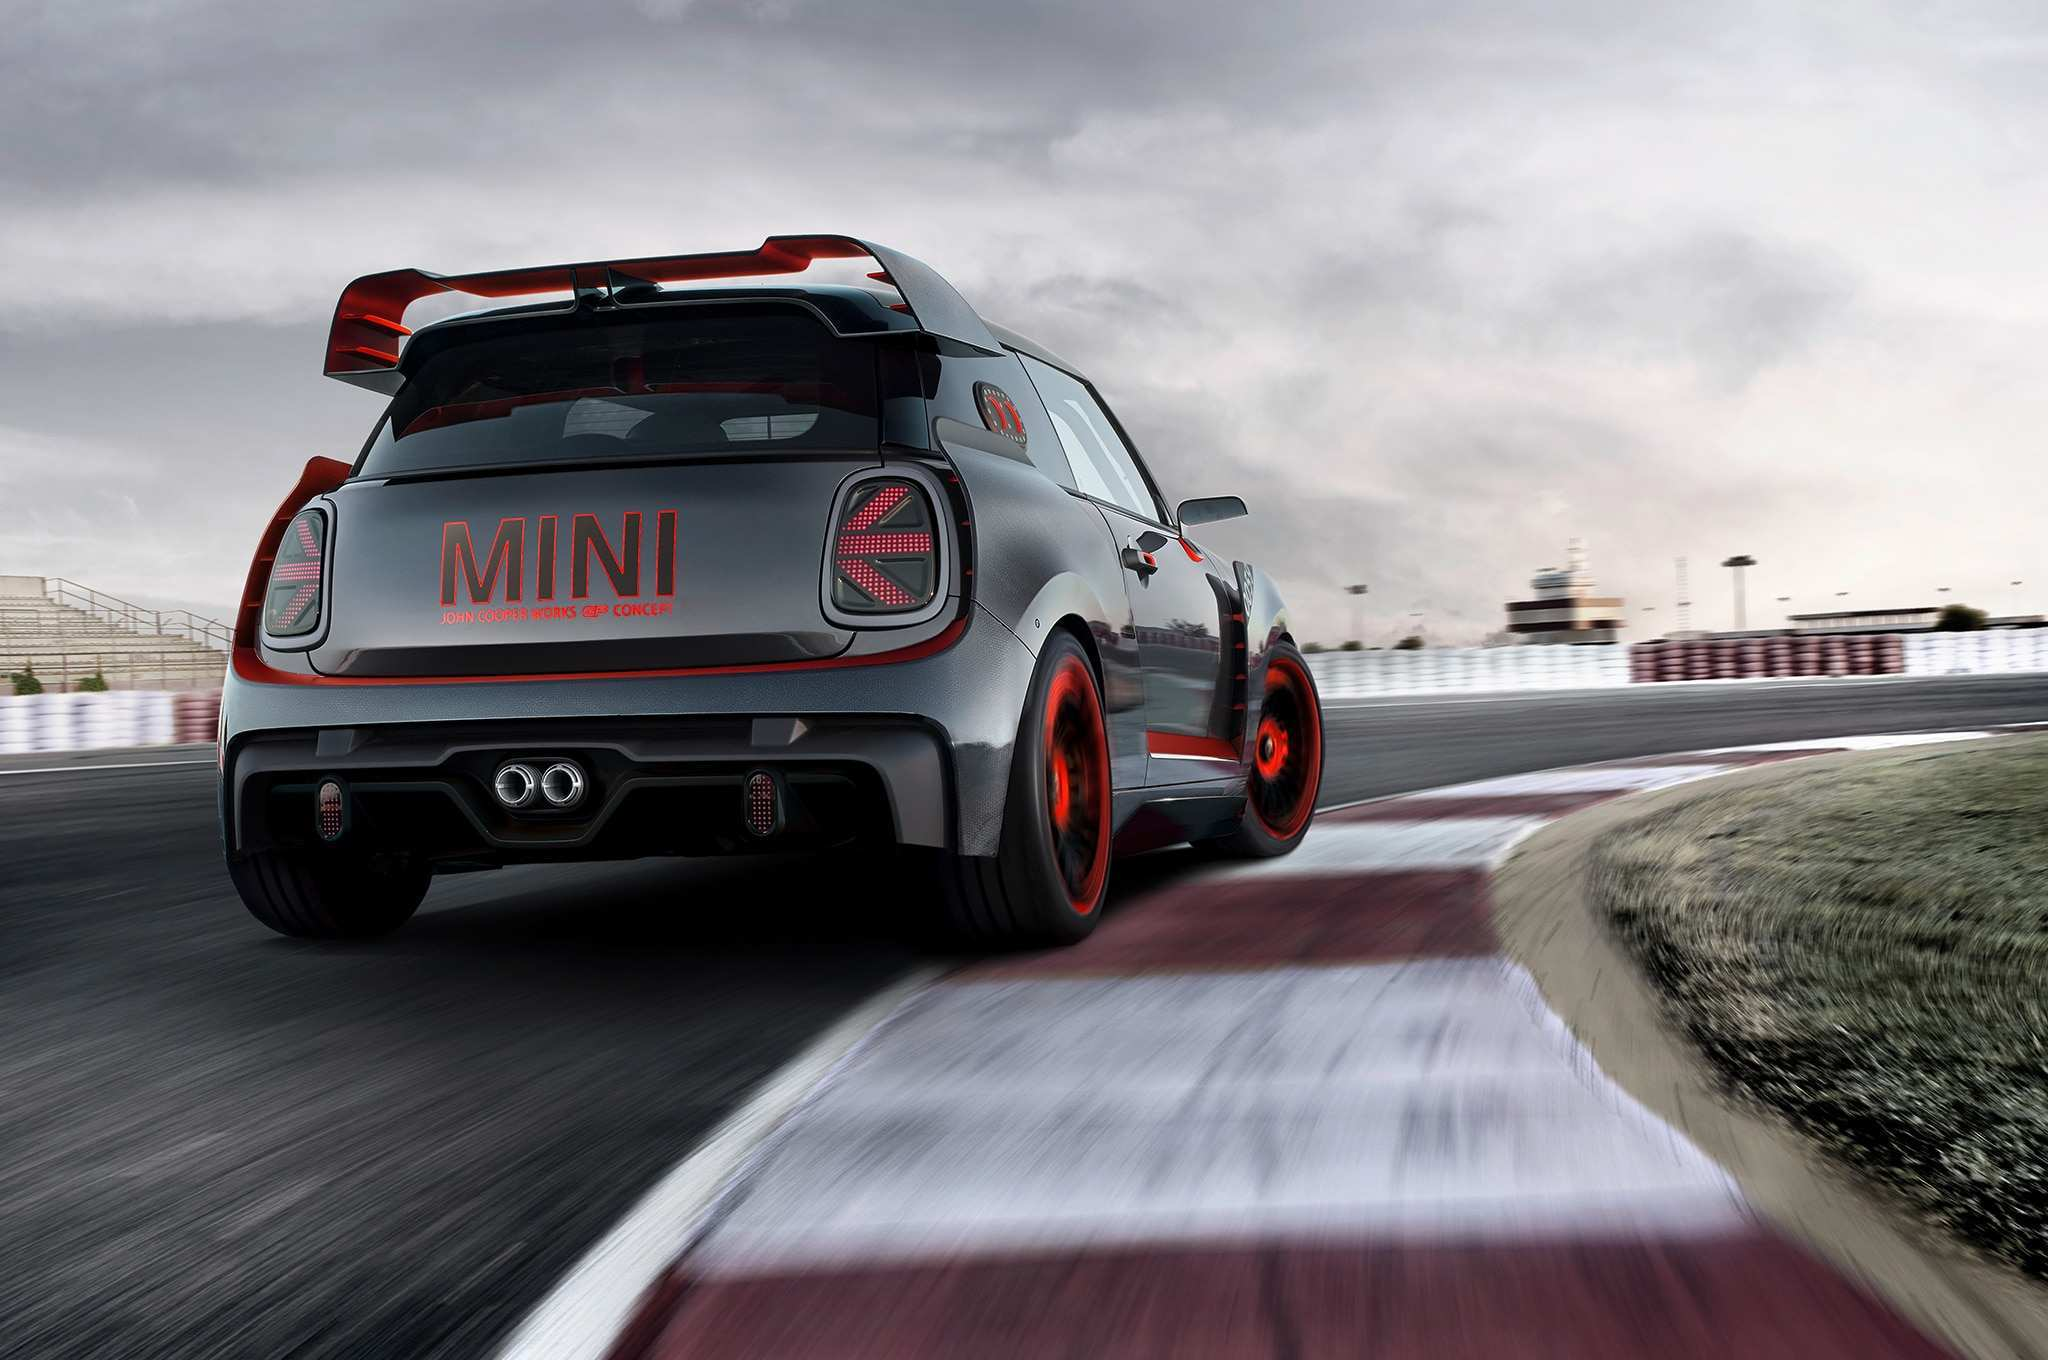 78 All New 2020 Mini Cooper Jcw Rumors with 2020 Mini Cooper Jcw